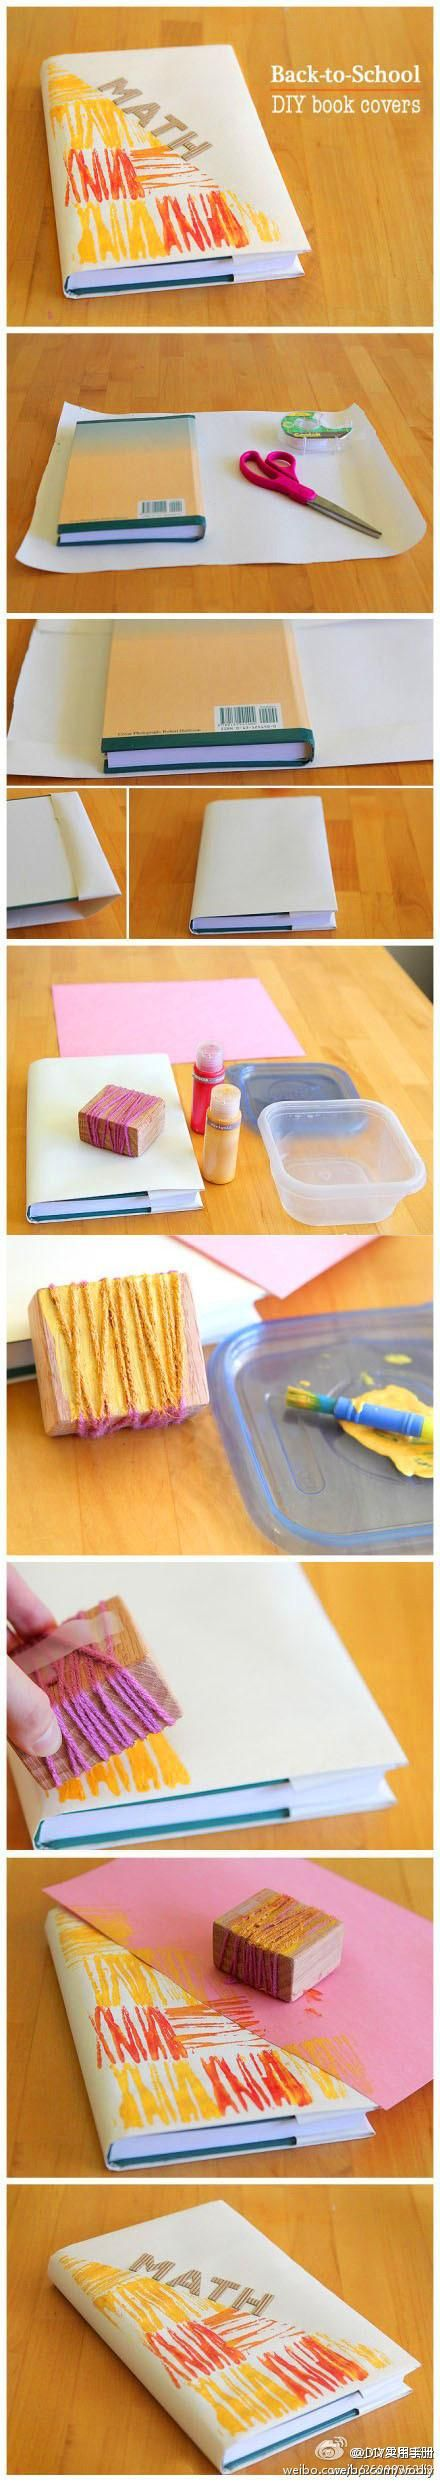 10 creative diy book cover ideas - Diy Back To School Diy Book Cover My Favorite Thing About